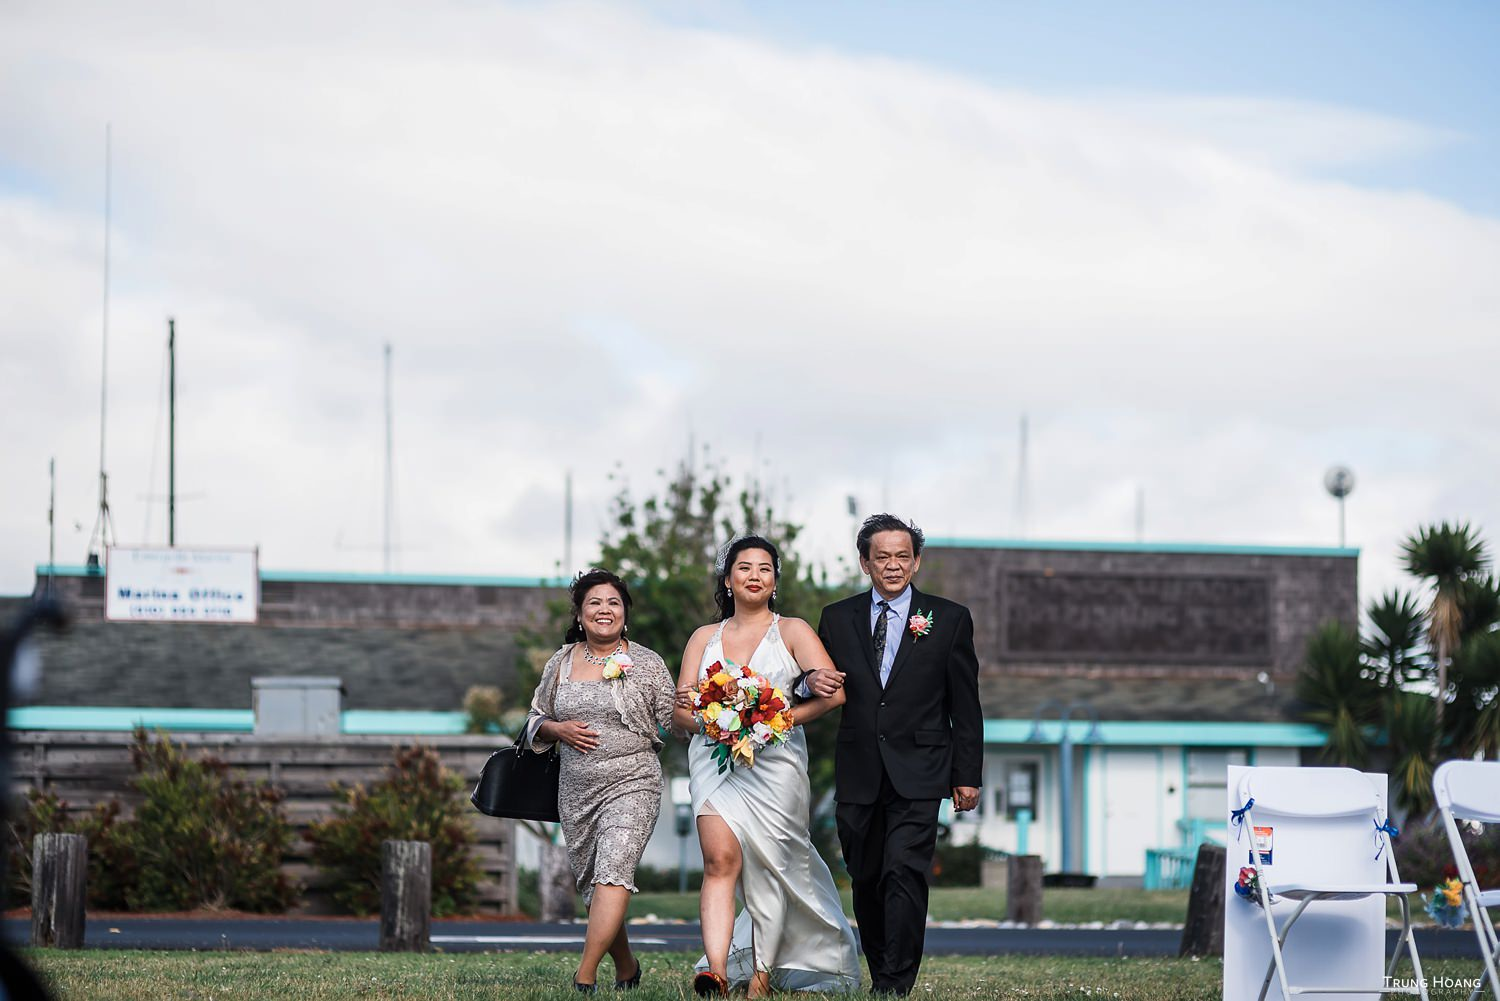 Wedding processional photo Emeryville Wedding Photographer